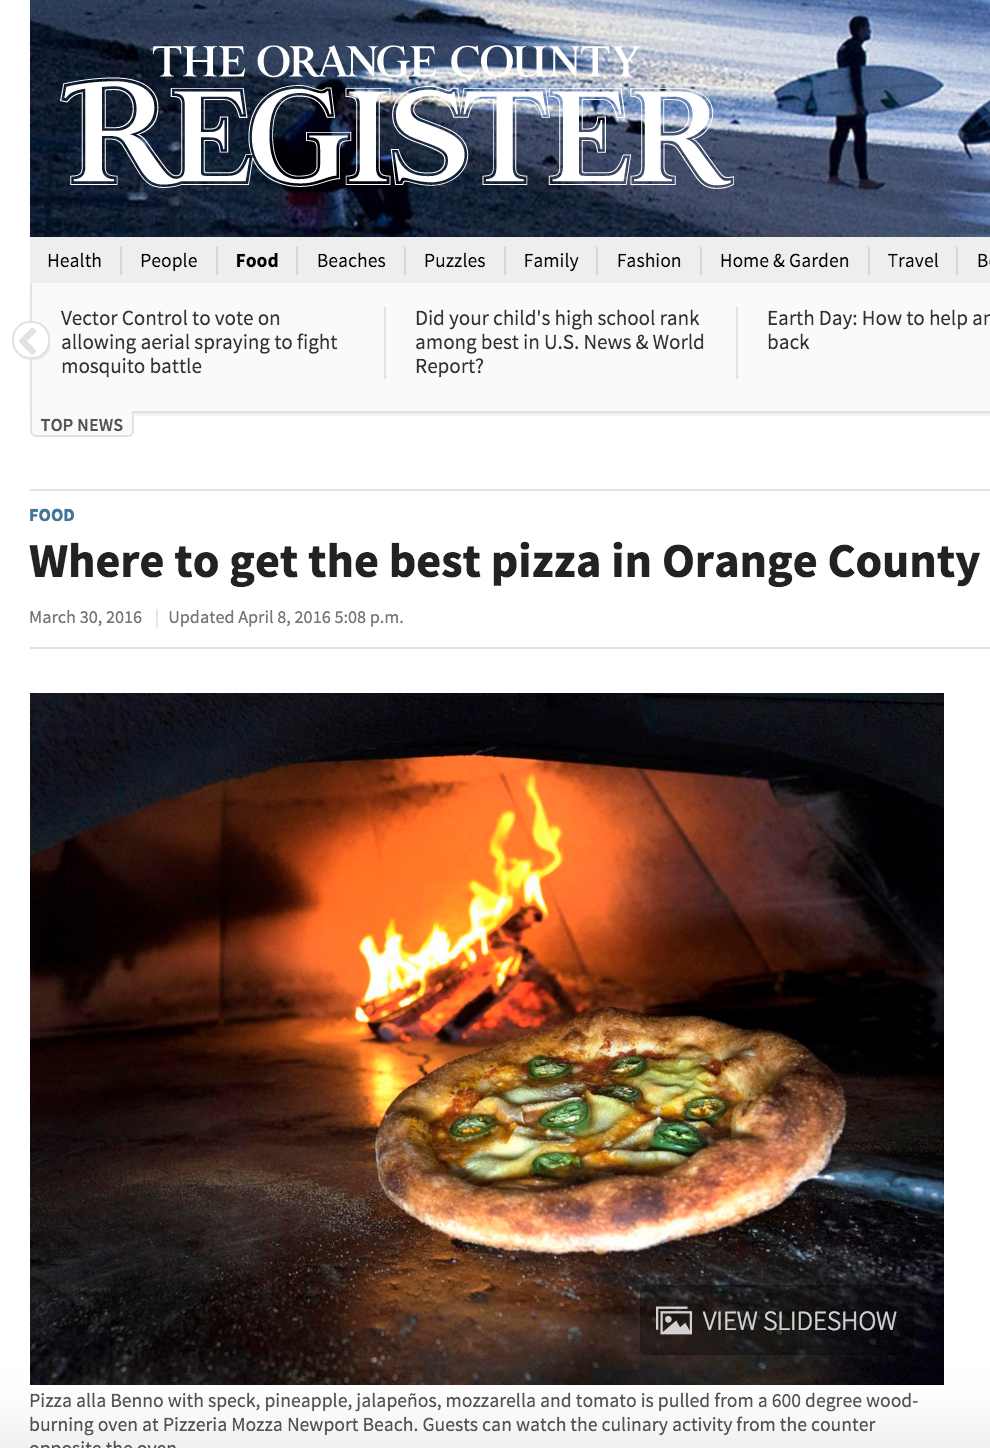 OC Register Article highlights where to get the best pizza in orange county and lists 4SM's Jinny's Pizzeria